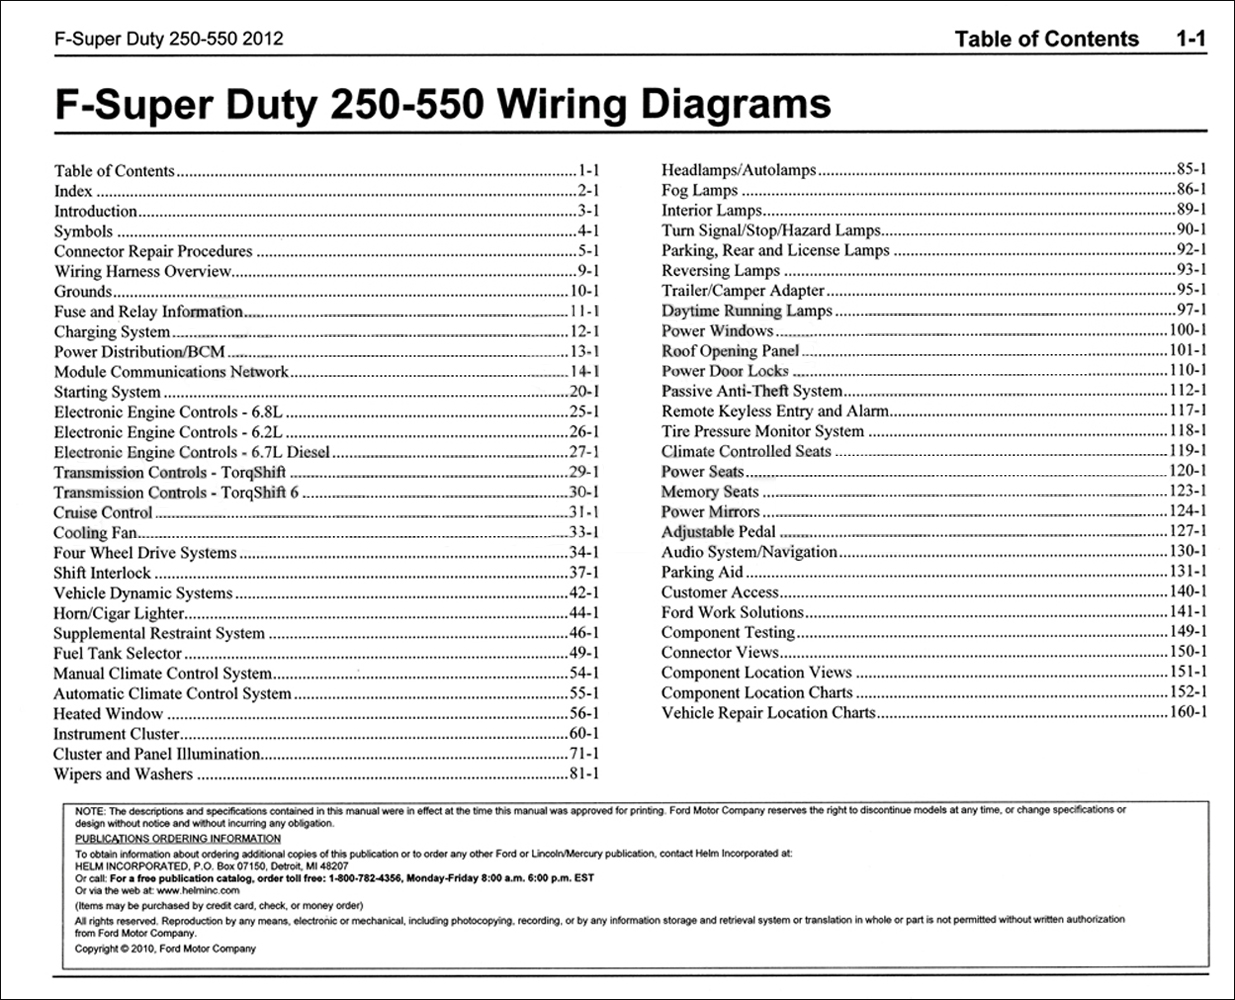 2012 Ford F 250 Thru 550 Super Duty Wiring Diagram Manual Original Factory Colors